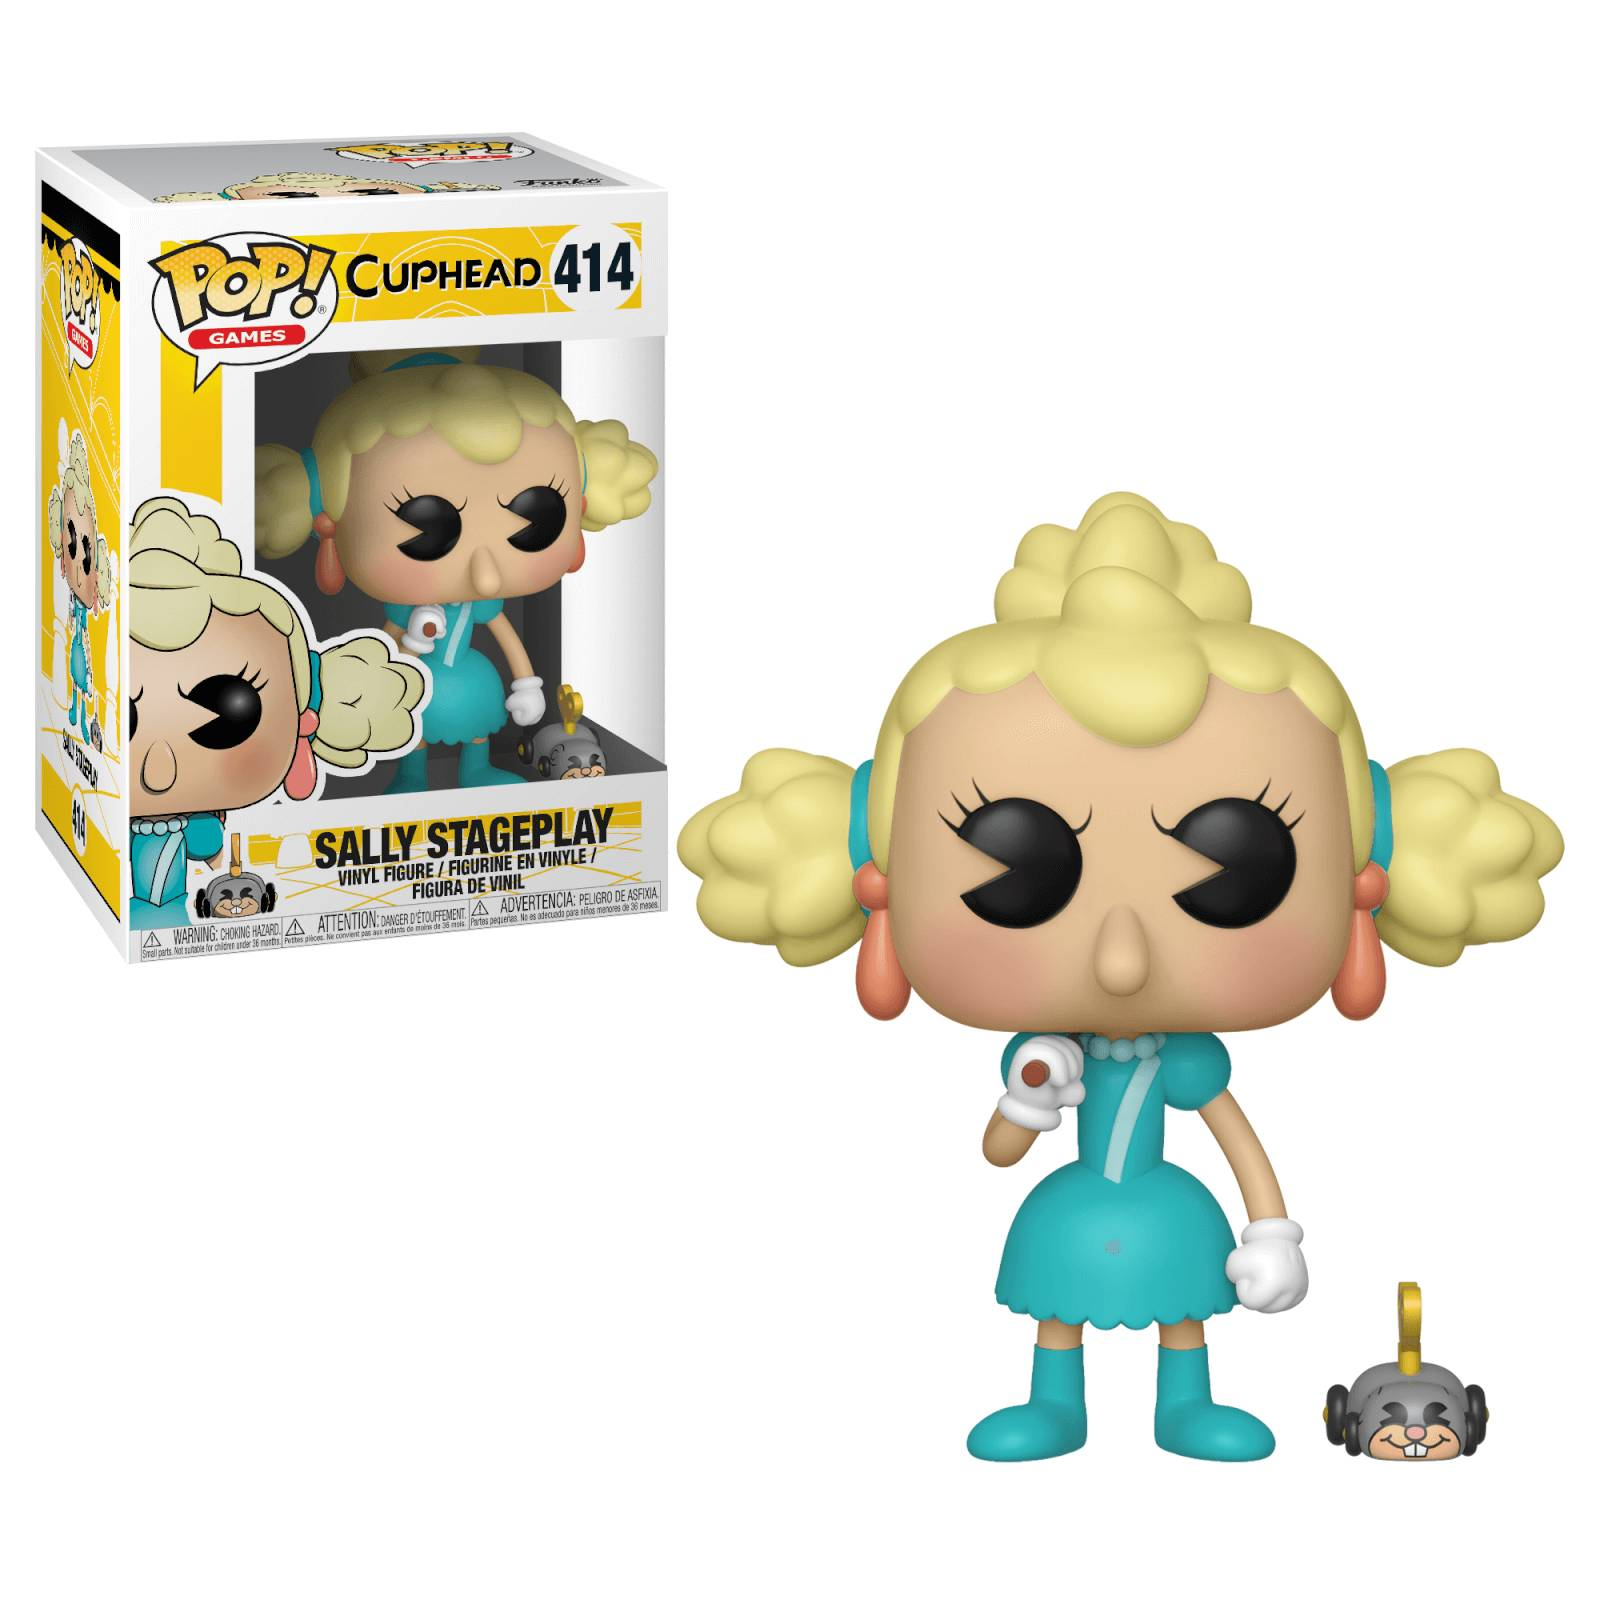 Pop! Vinyl Figurine Pop! Sally & Wind Up Move Cuphead